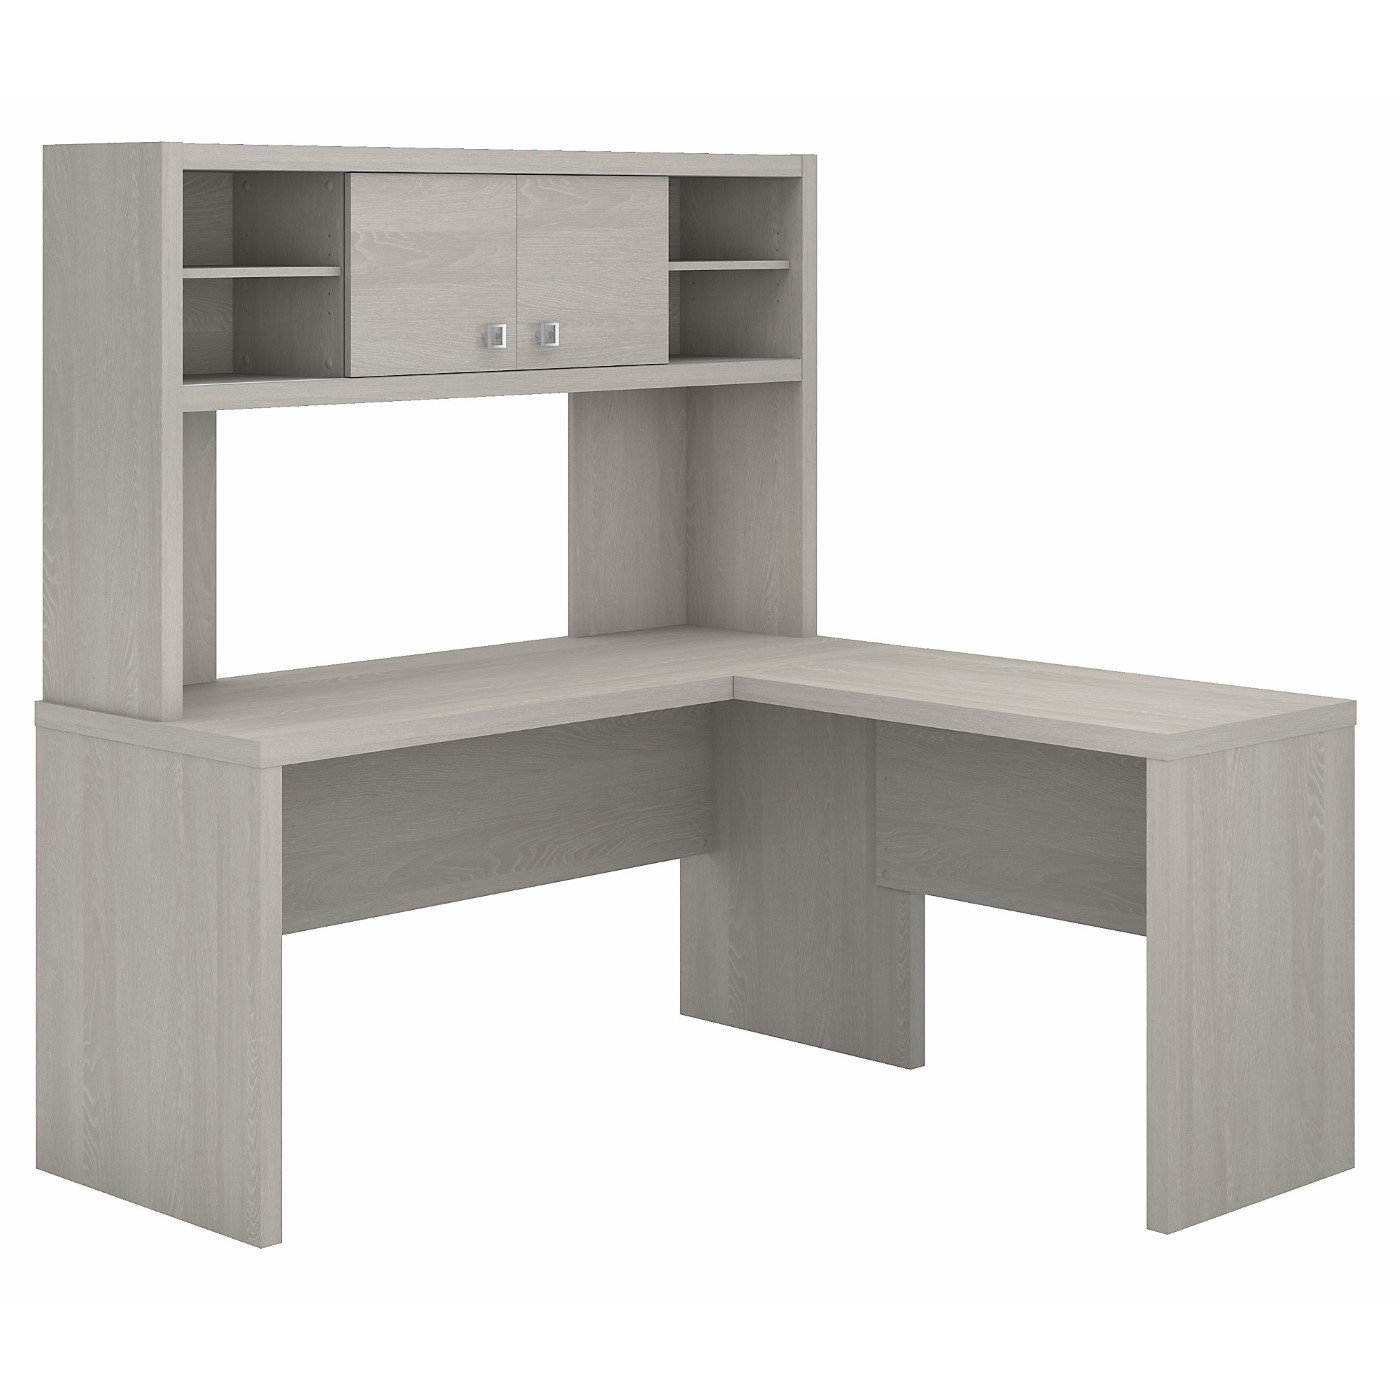 </b></font><b>The kathy ireland� Echo L Shaped Desk with Hutch is Sustainable Eco Friendly Furniture. Includes Free Shipping! 30H x 72L x 72W</b></font>  VIDEO BELOW. <p>RATING:&#11088;&#11088;&#11088;&#11088;&#11088;</b></font></b>